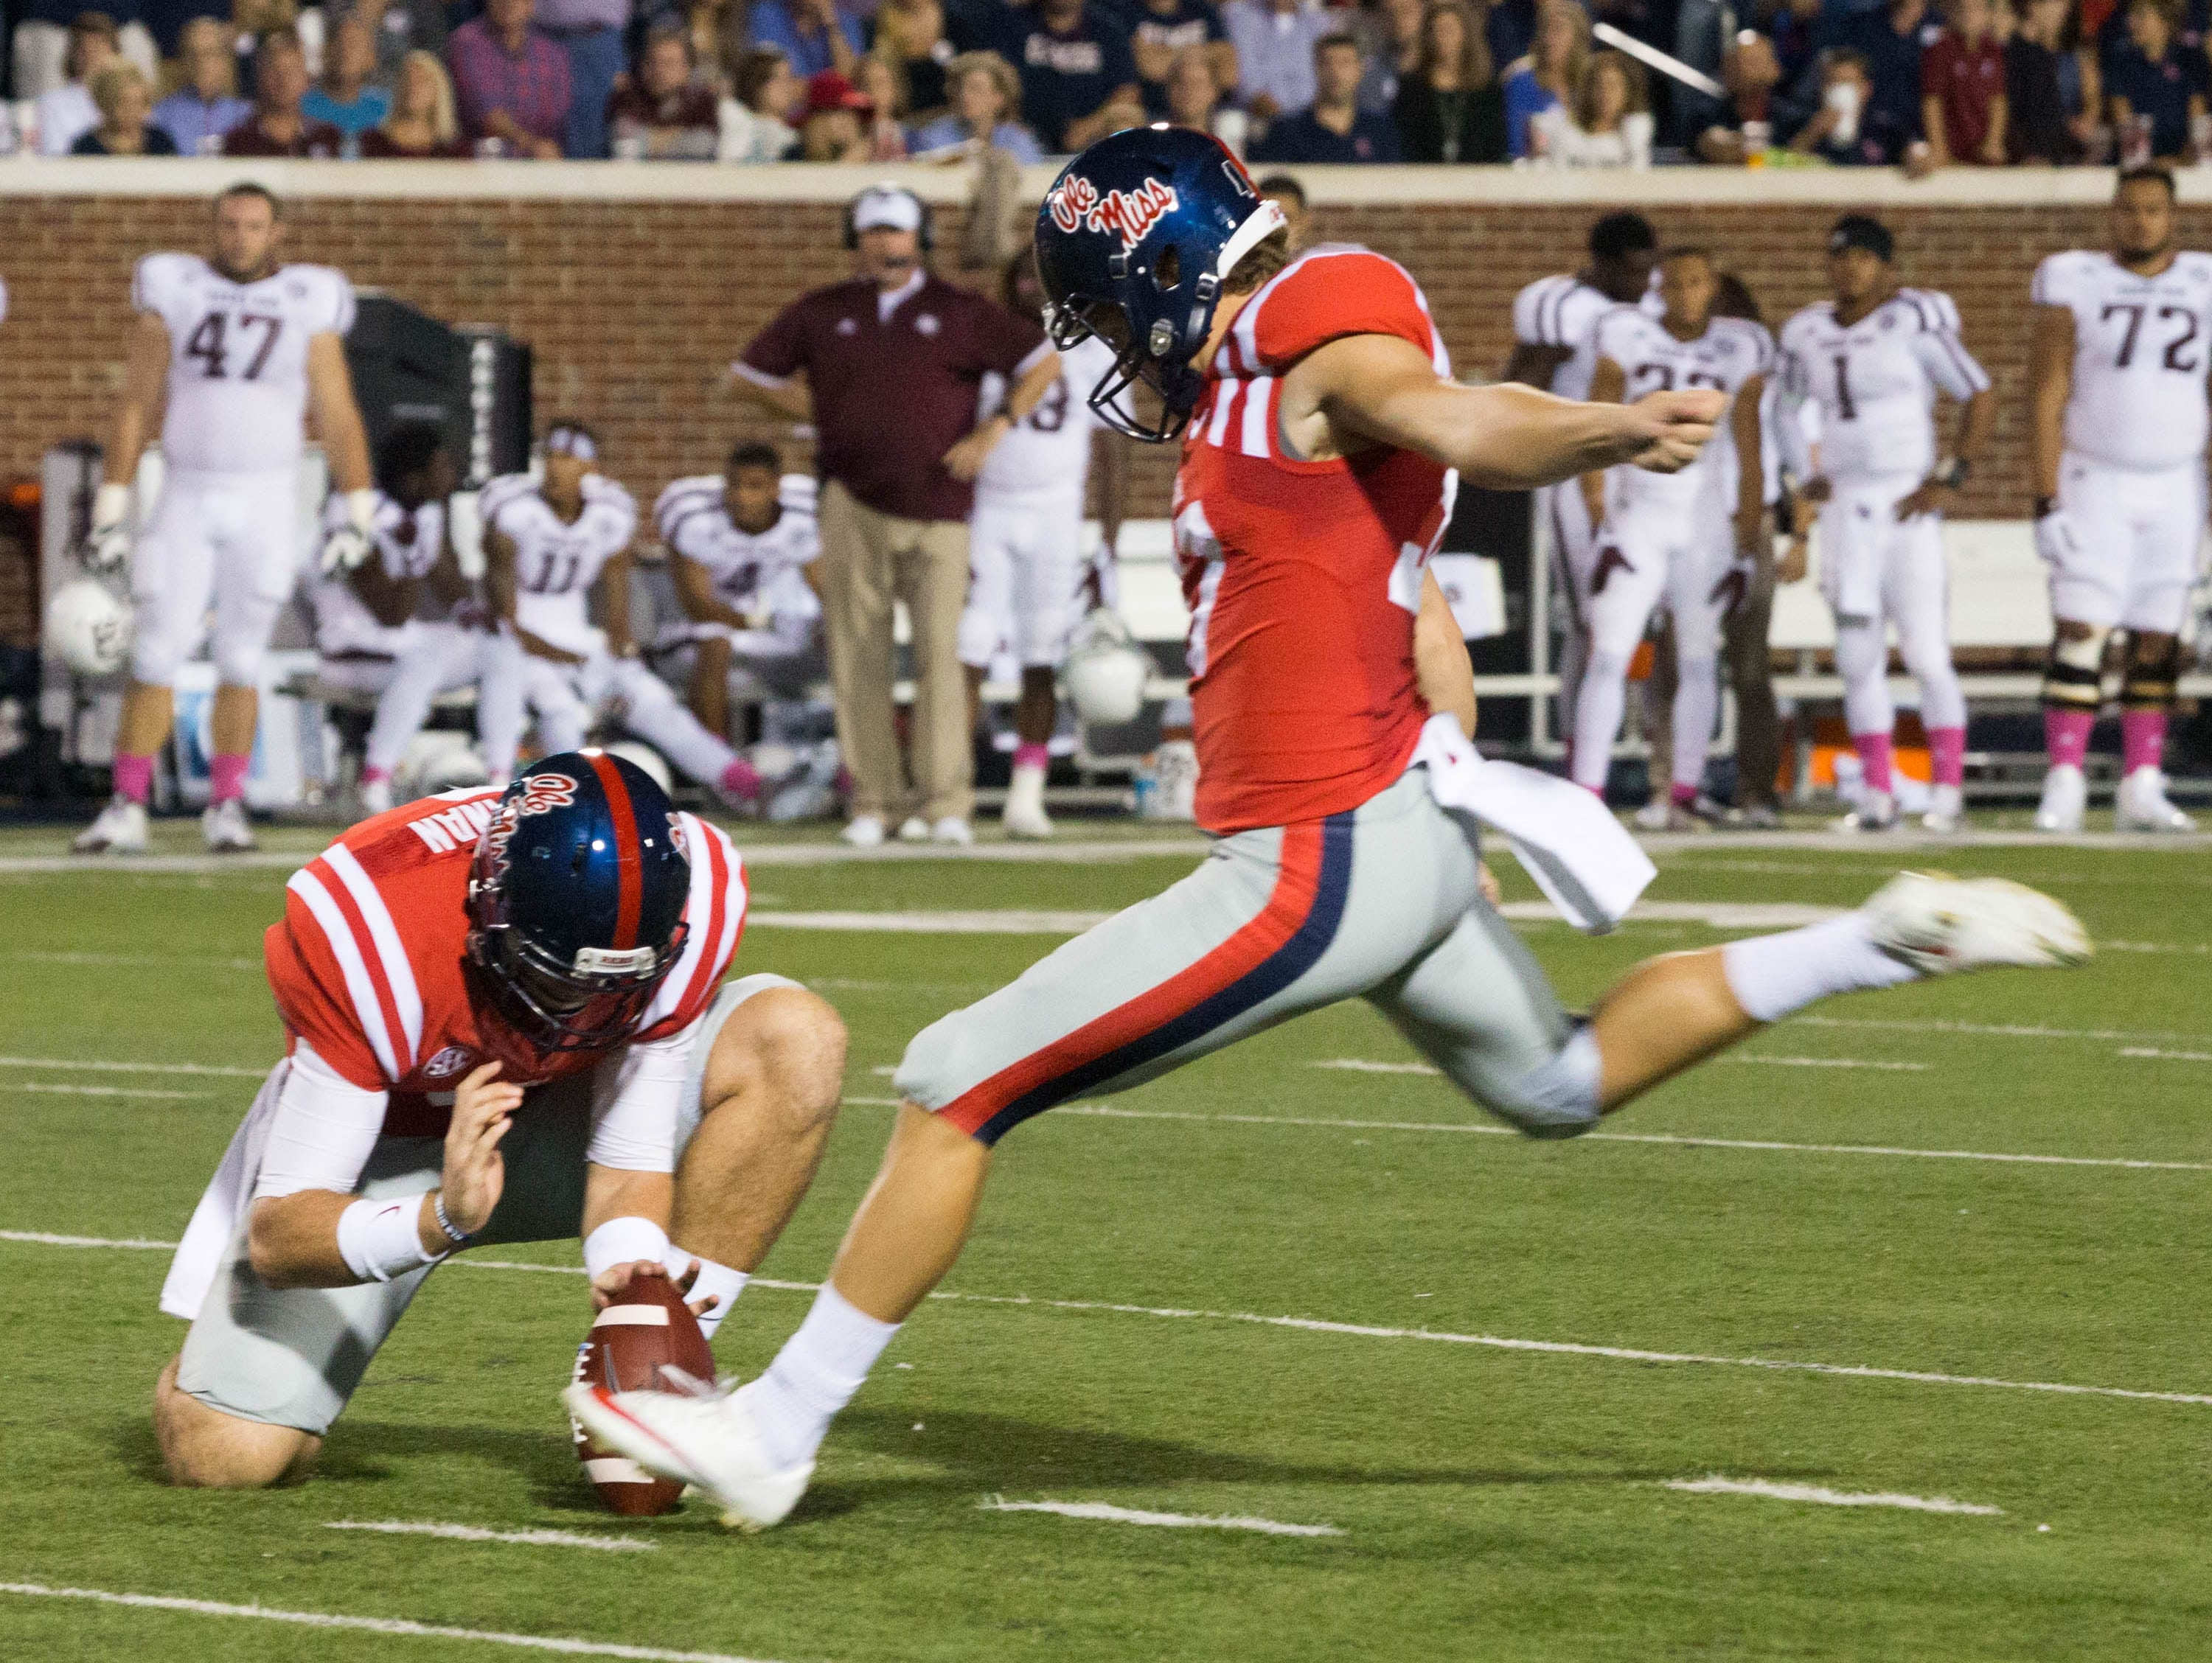 Ryan Buchanan holds for Gary Wunderlich who was 3-4 in field goals, scoring 9 points in the first half against Texas A&M.